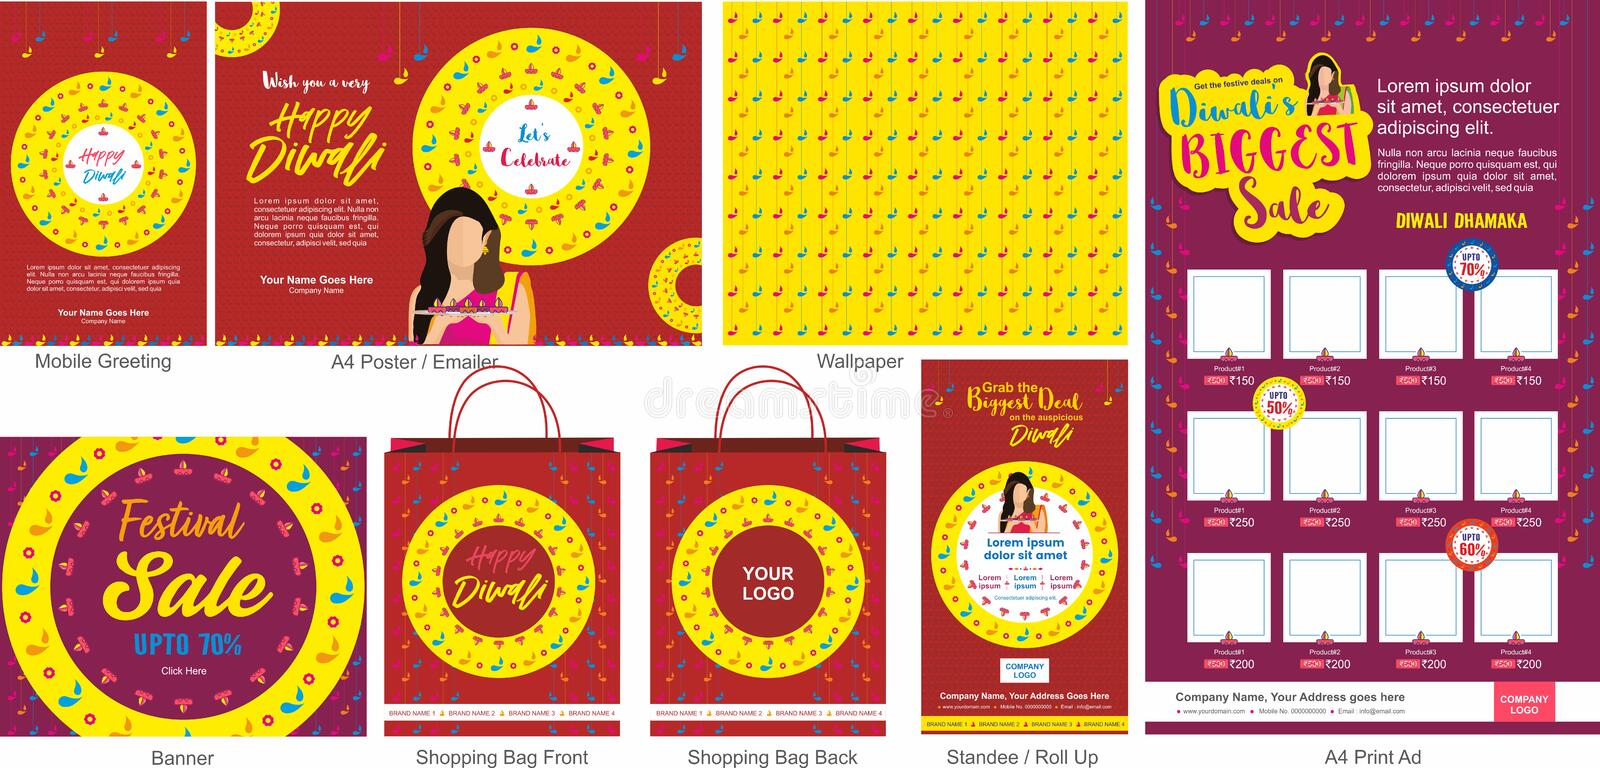 Diwali Festival Offer Big Sale Template with mobile greeting, mailer or flyer, wallpaper, print ad, Banner, Shopping bag design a. Nd roll ups. An Indian Hindu royalty free illustration